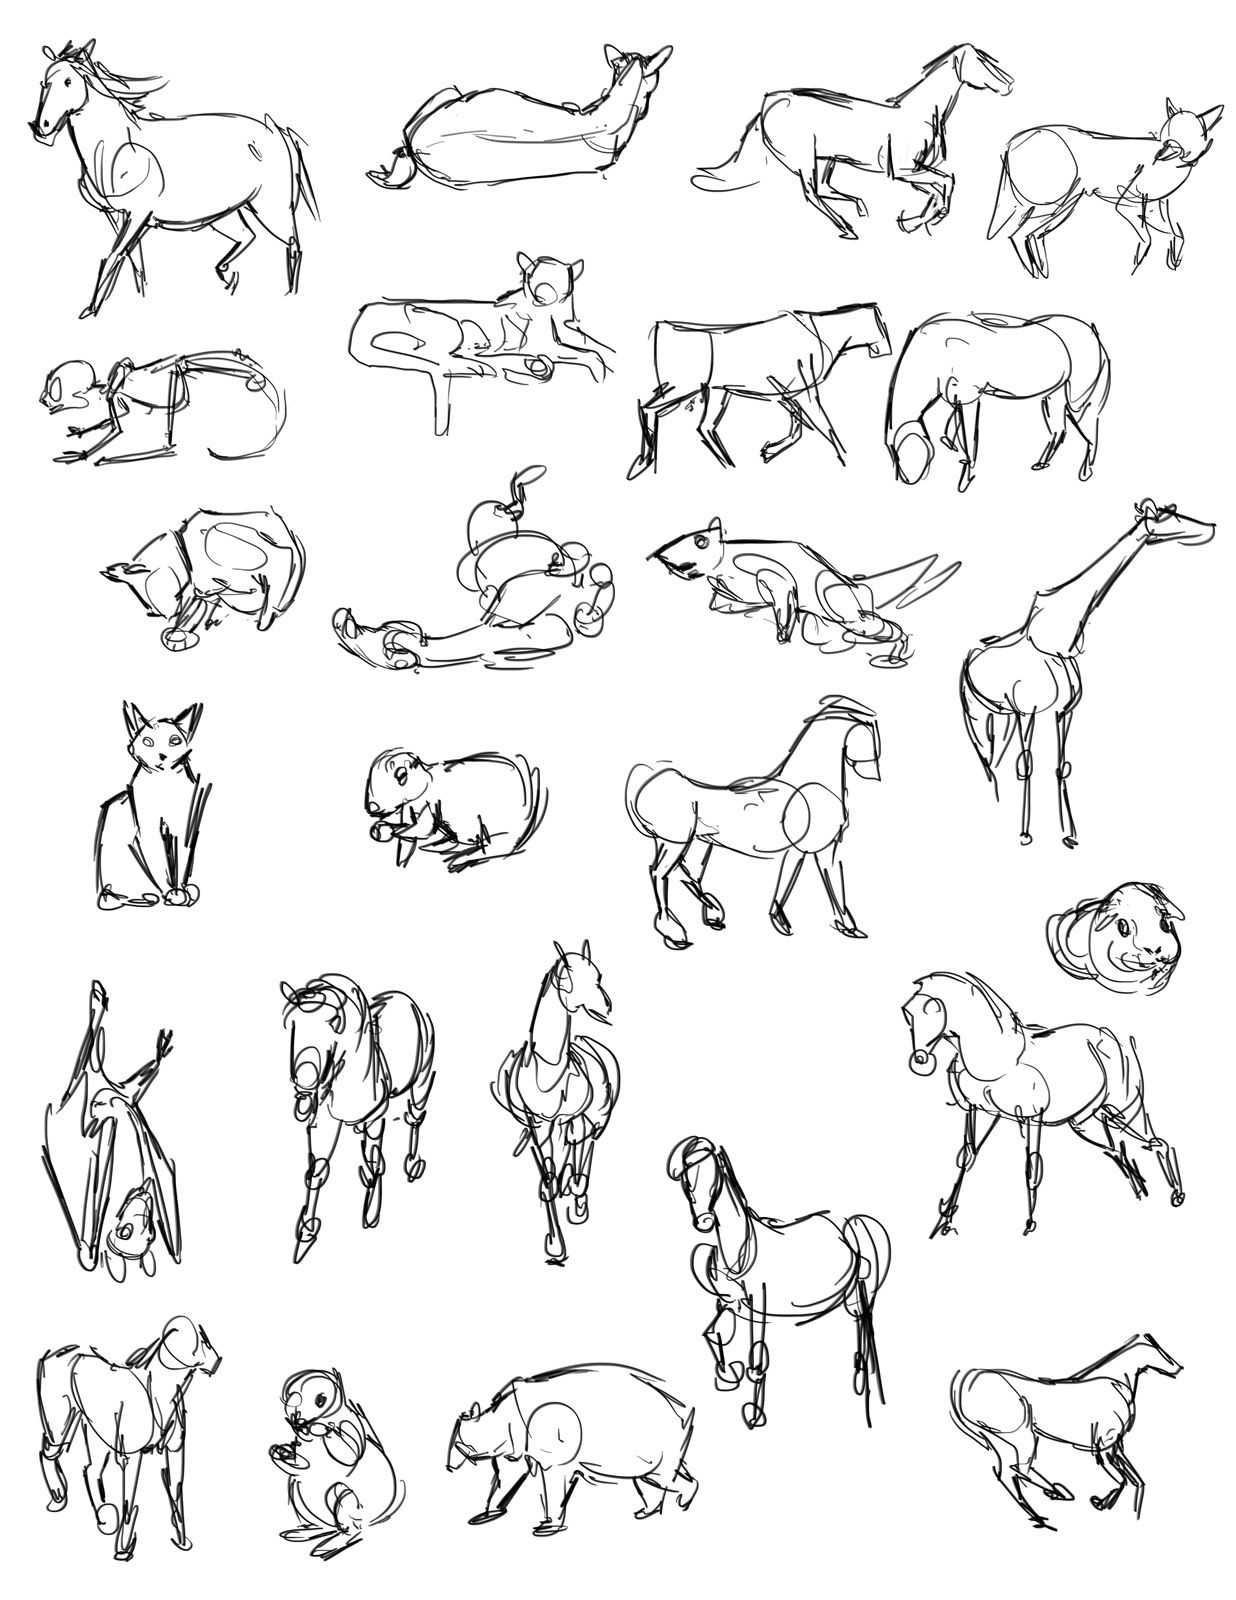 Casey hunt gesture drawing tool animals character design <3